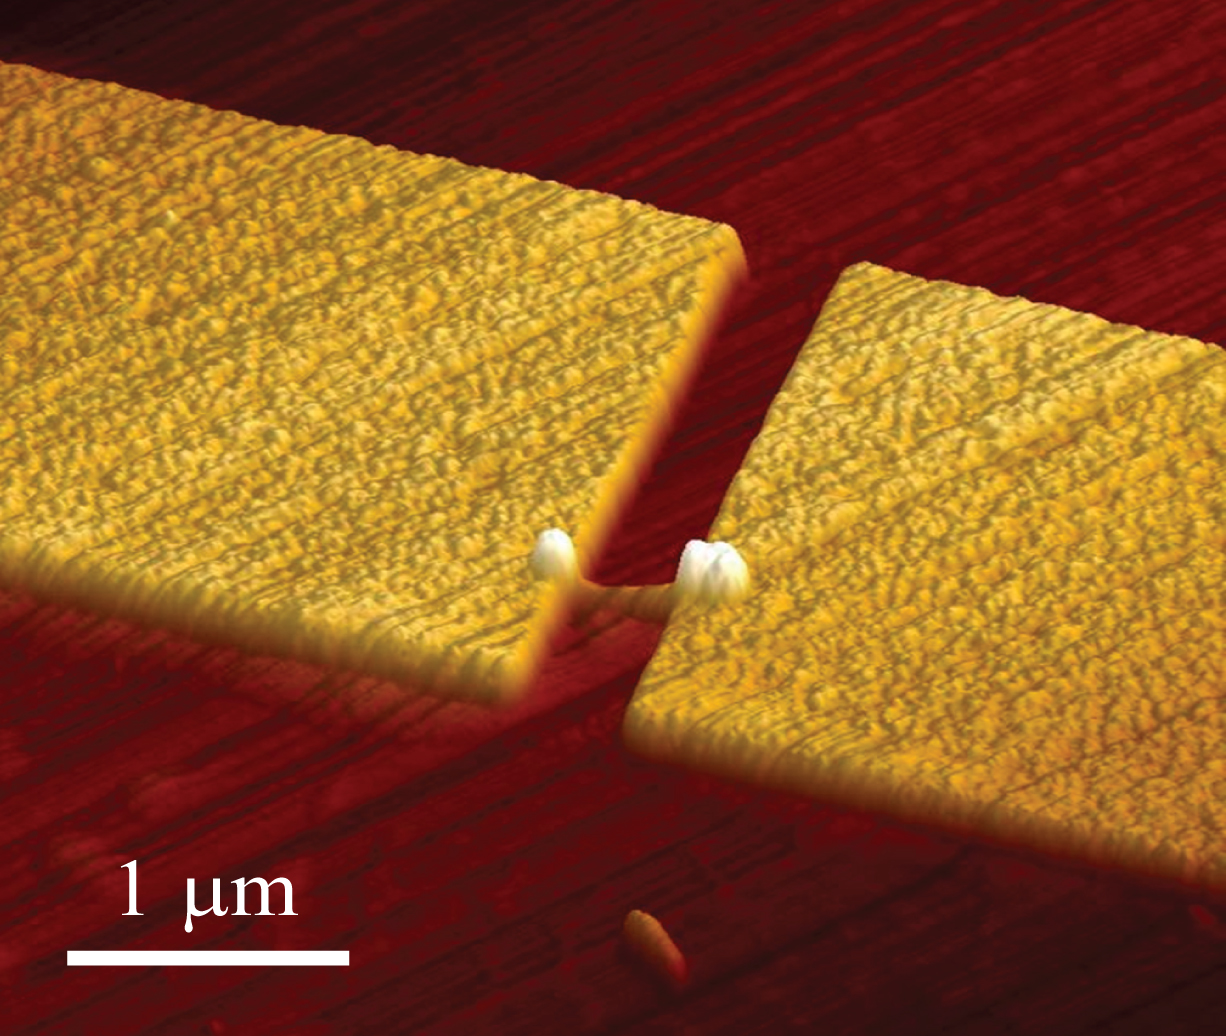 An atomic force microscope image of a nanowire single photon emitter. Courtesy of Pallab Bhattacharya